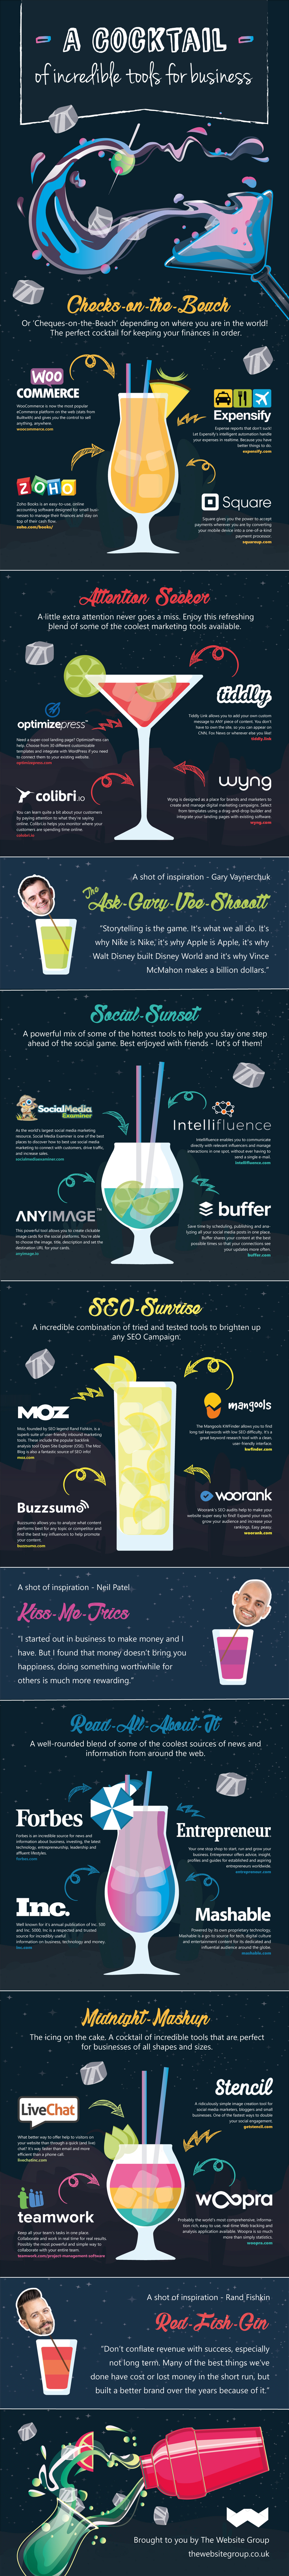 A Cocktail Of Incredible Business Tools [Infographic]